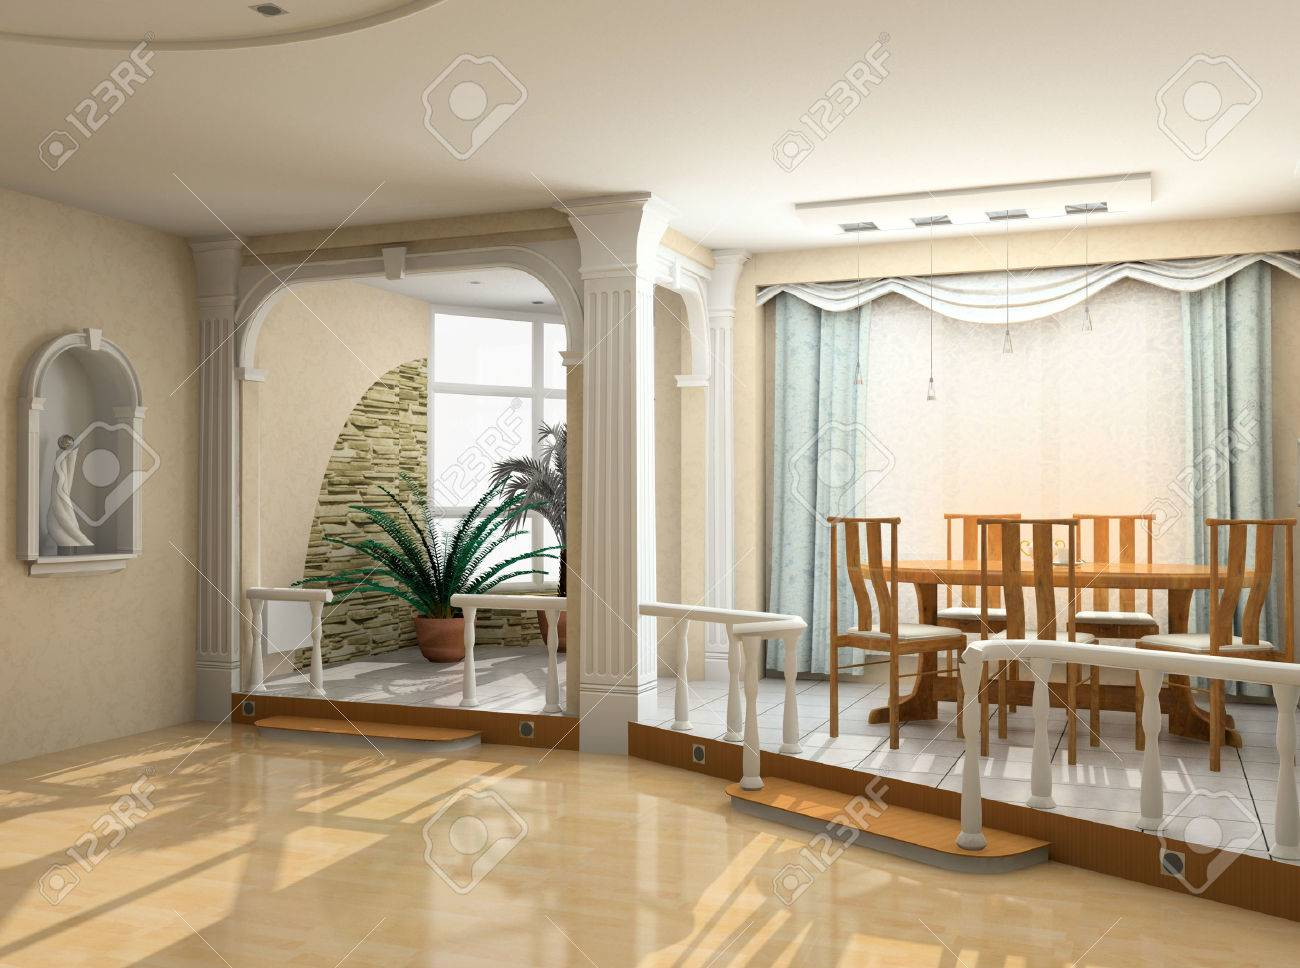 modern interior design in classic style (privat apartment 3d rendering) Stock Photo - 1412278